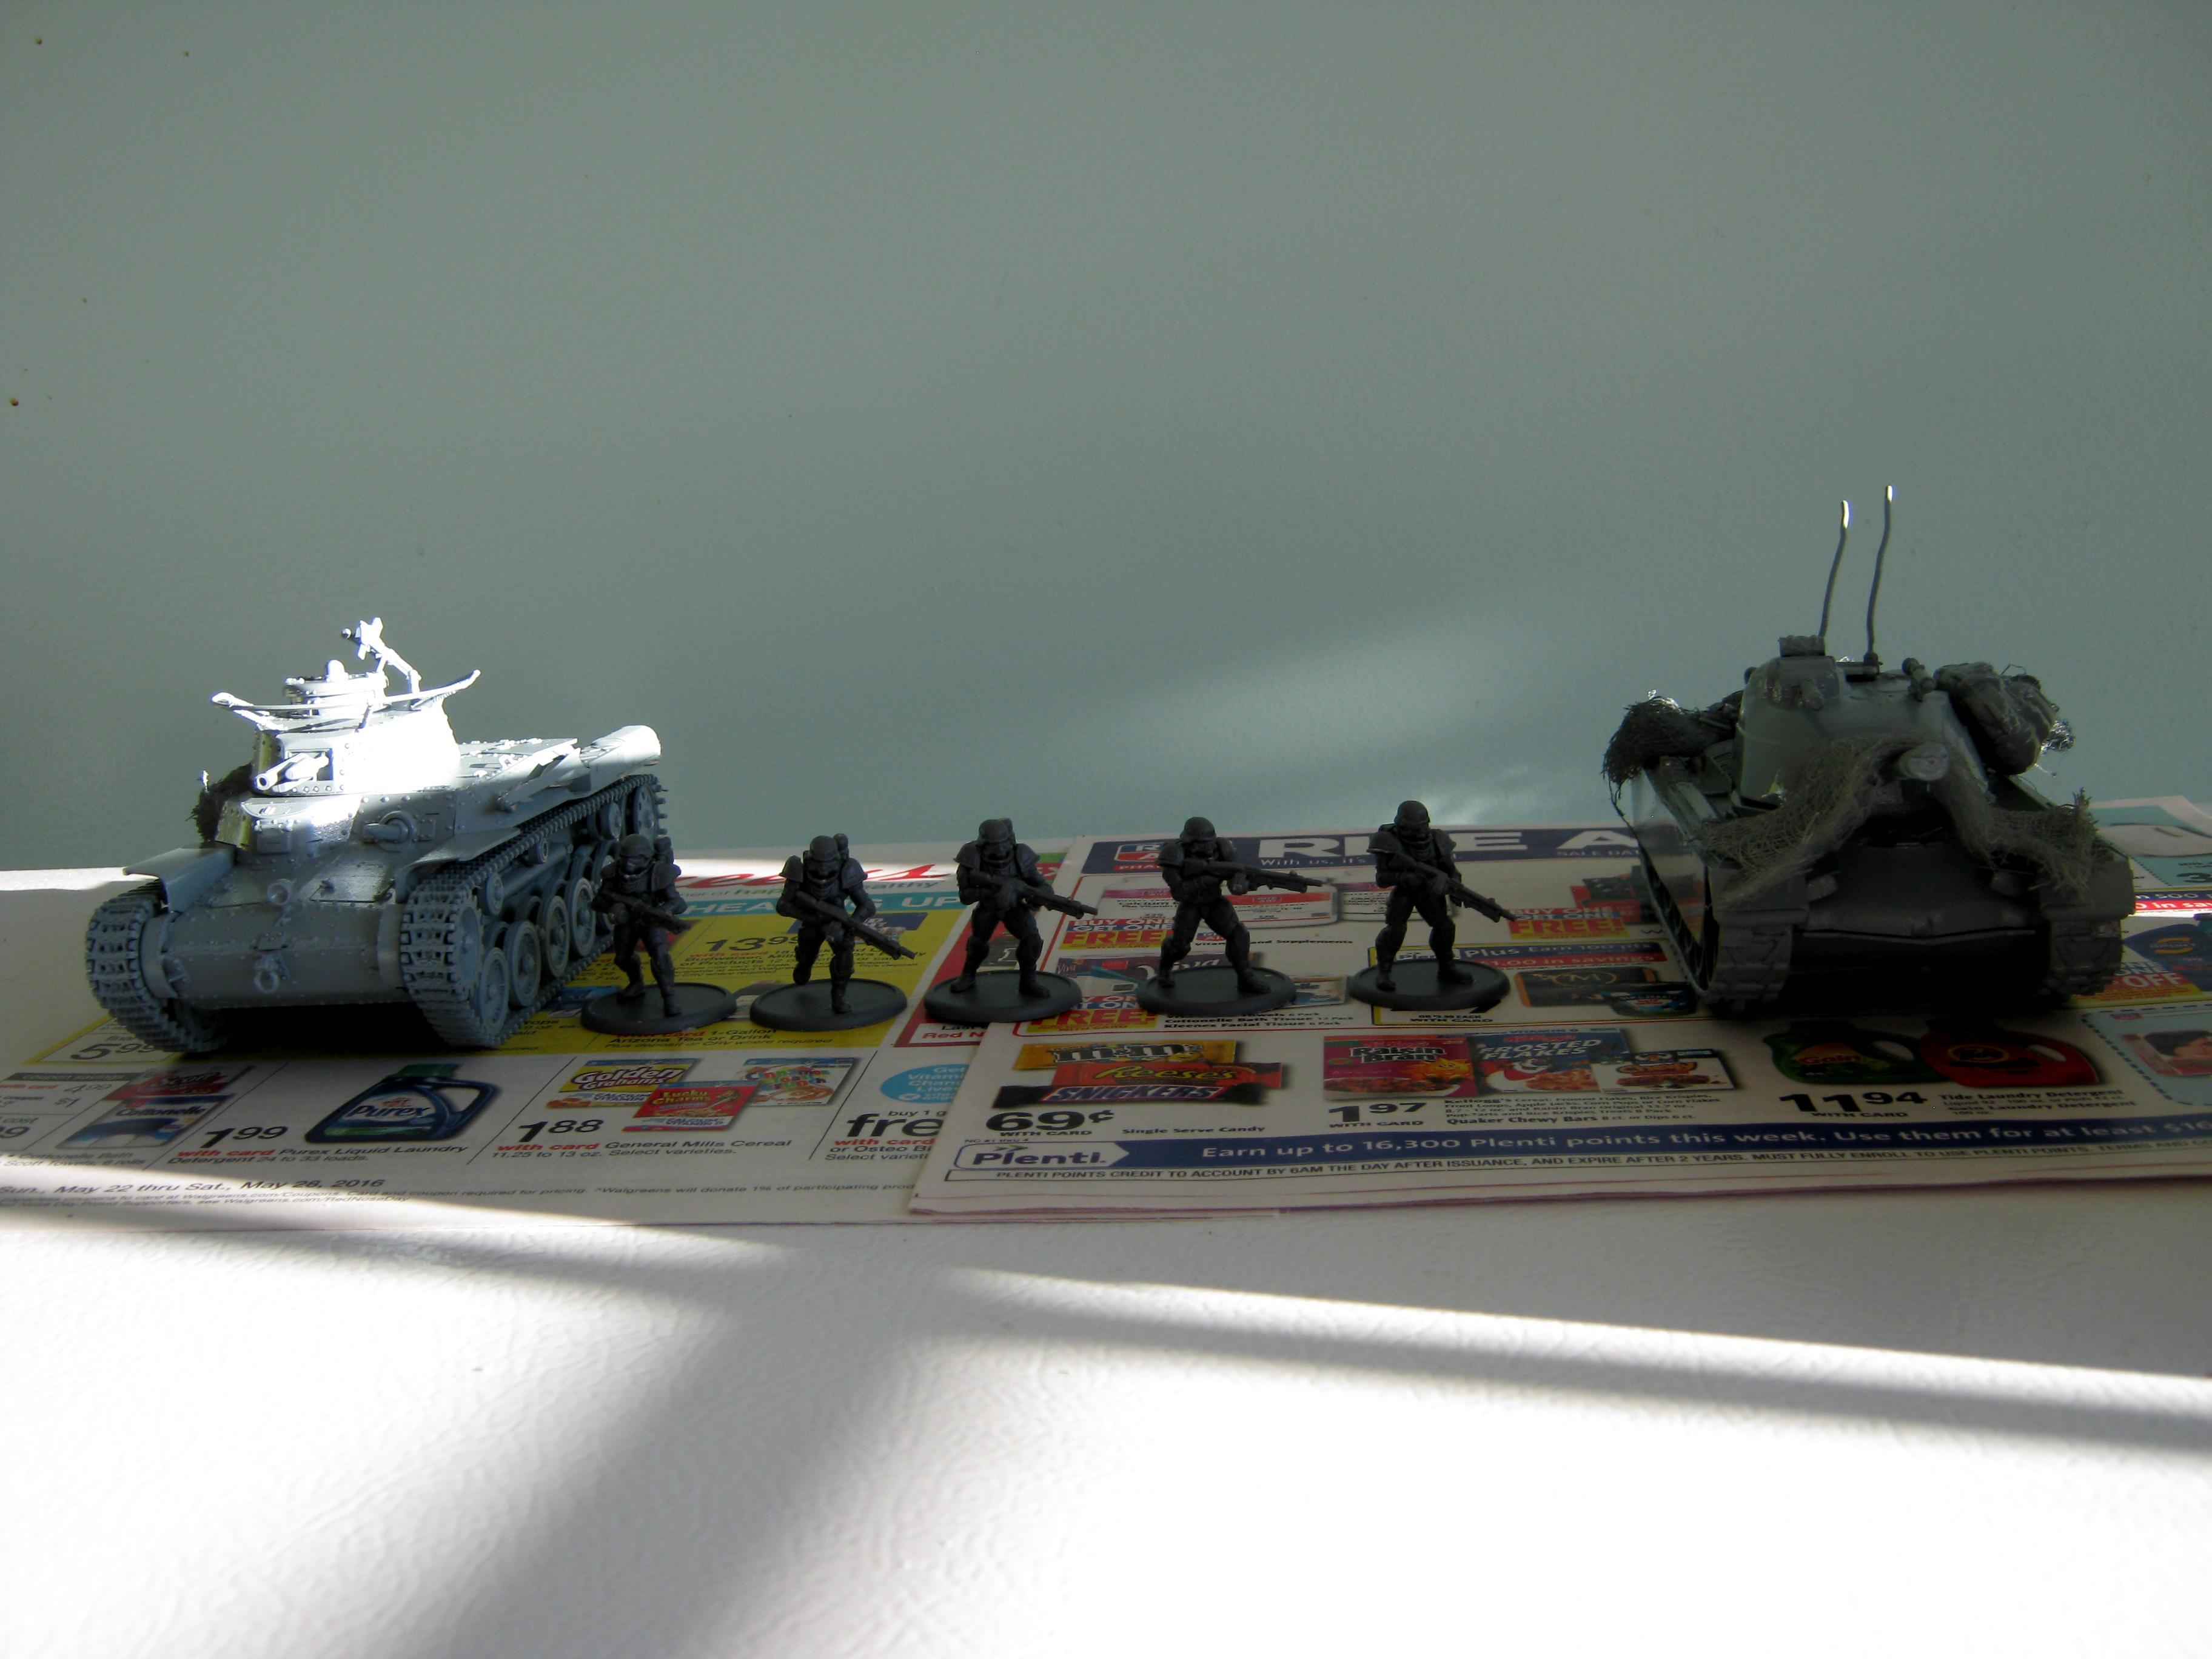 Chi-ha, Dreamforge Games, Eisenkern, Ija, Imperial, Imperial Japanese Army, Iron Core, Japanese, Light Tank, M47, M48, Recon Vehicle, Scouts, Storm Troopers, Tamiya, Tank, Timmee Toys, Toy, Type 97, World War 2